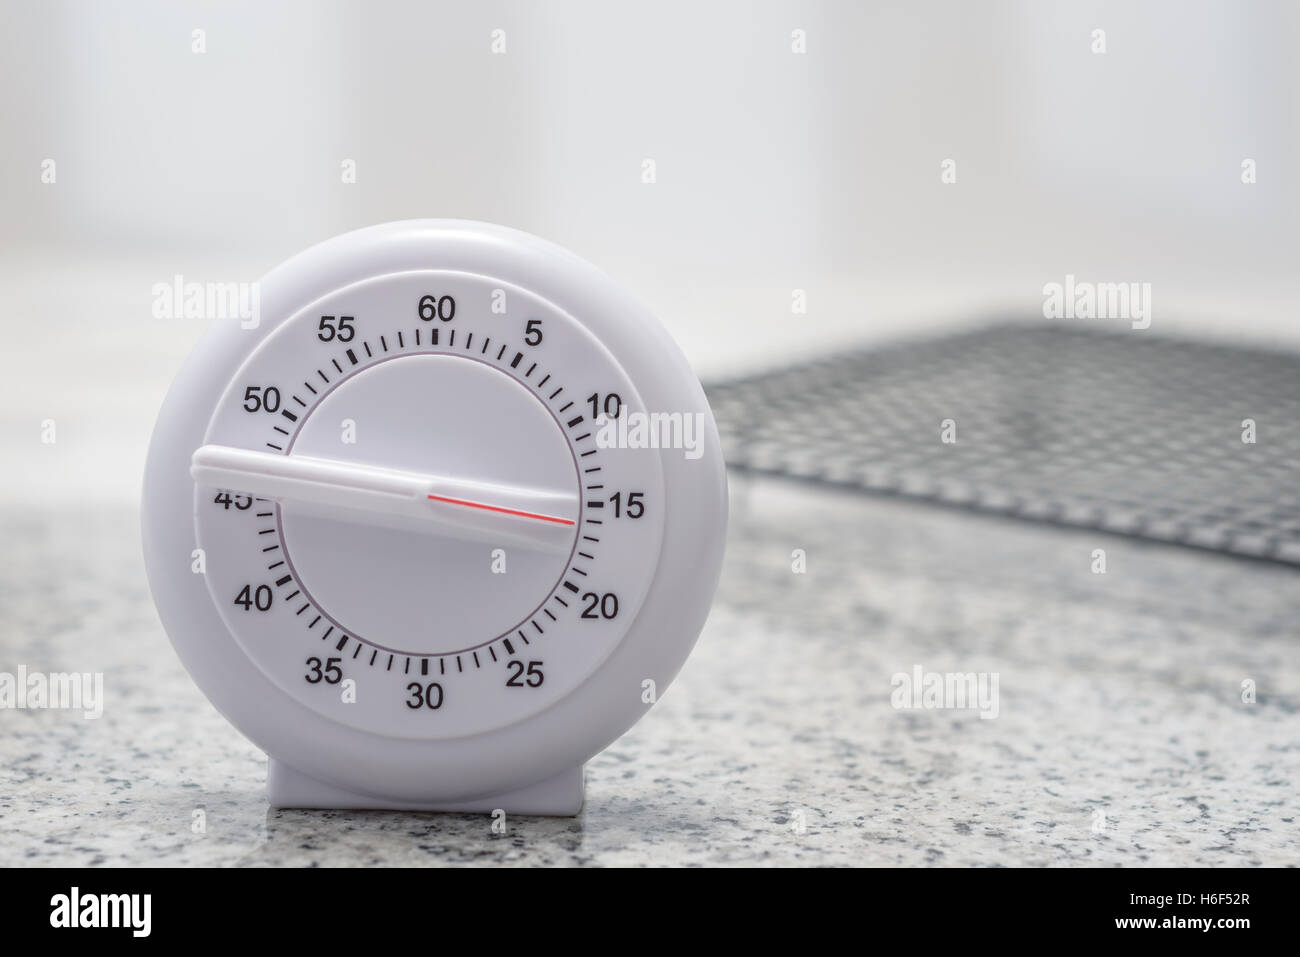 kitchen timer set for 15 minutes with cooling rack in the background